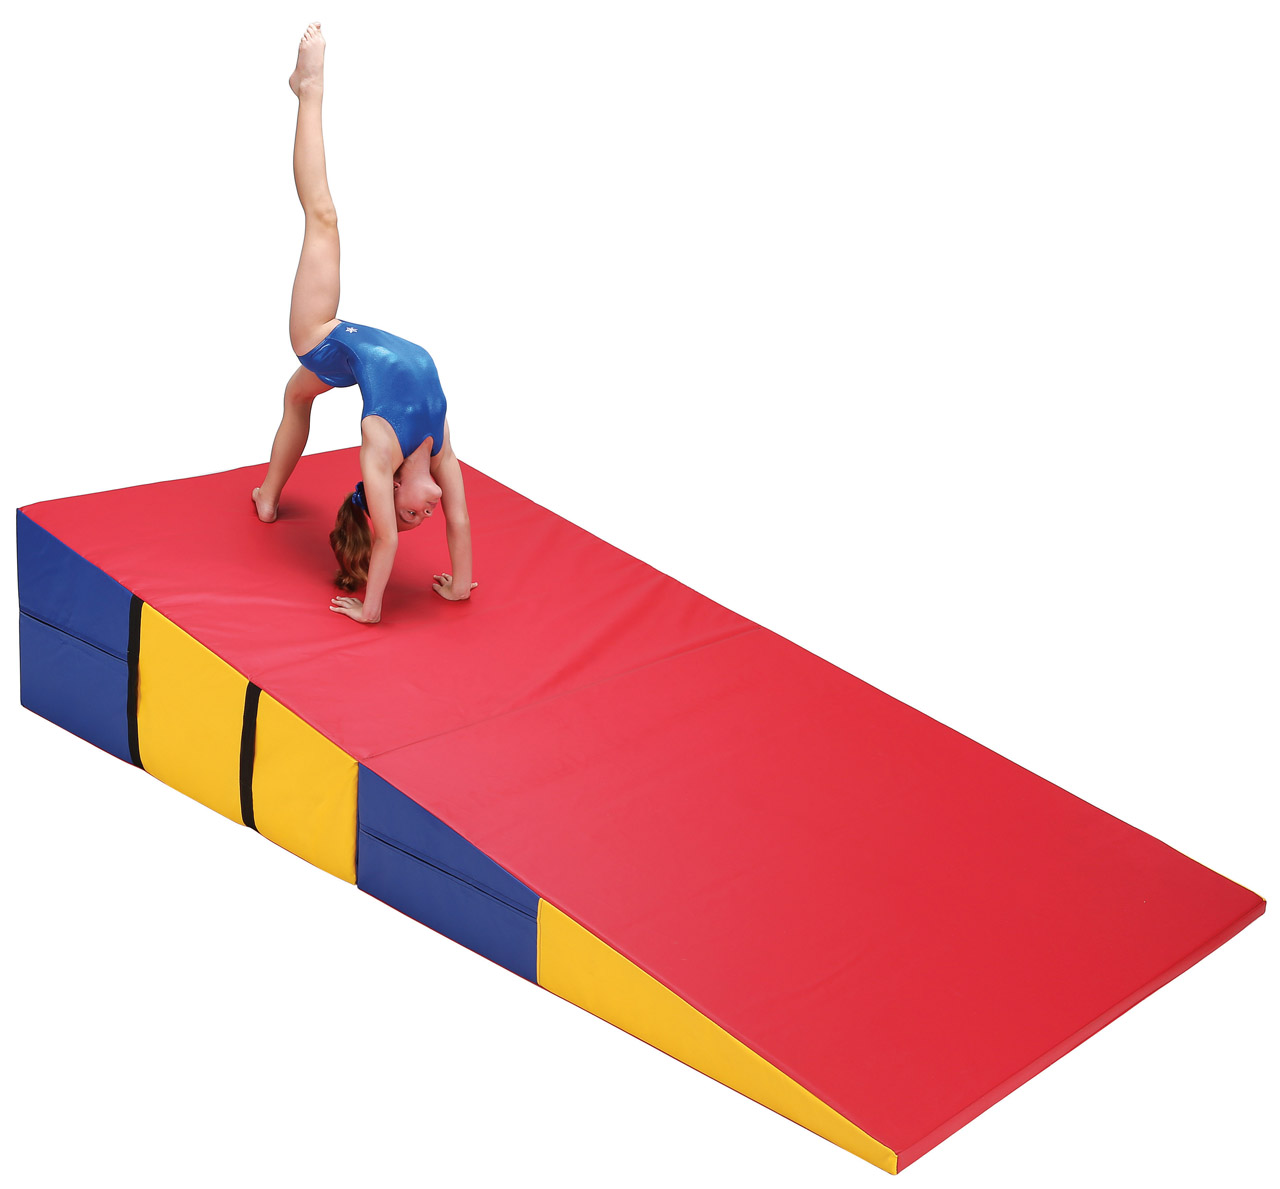 ideal outdoors incline com exercise tumbling dp for mats wedge mat incstores amazon practice gymnastics shape sports